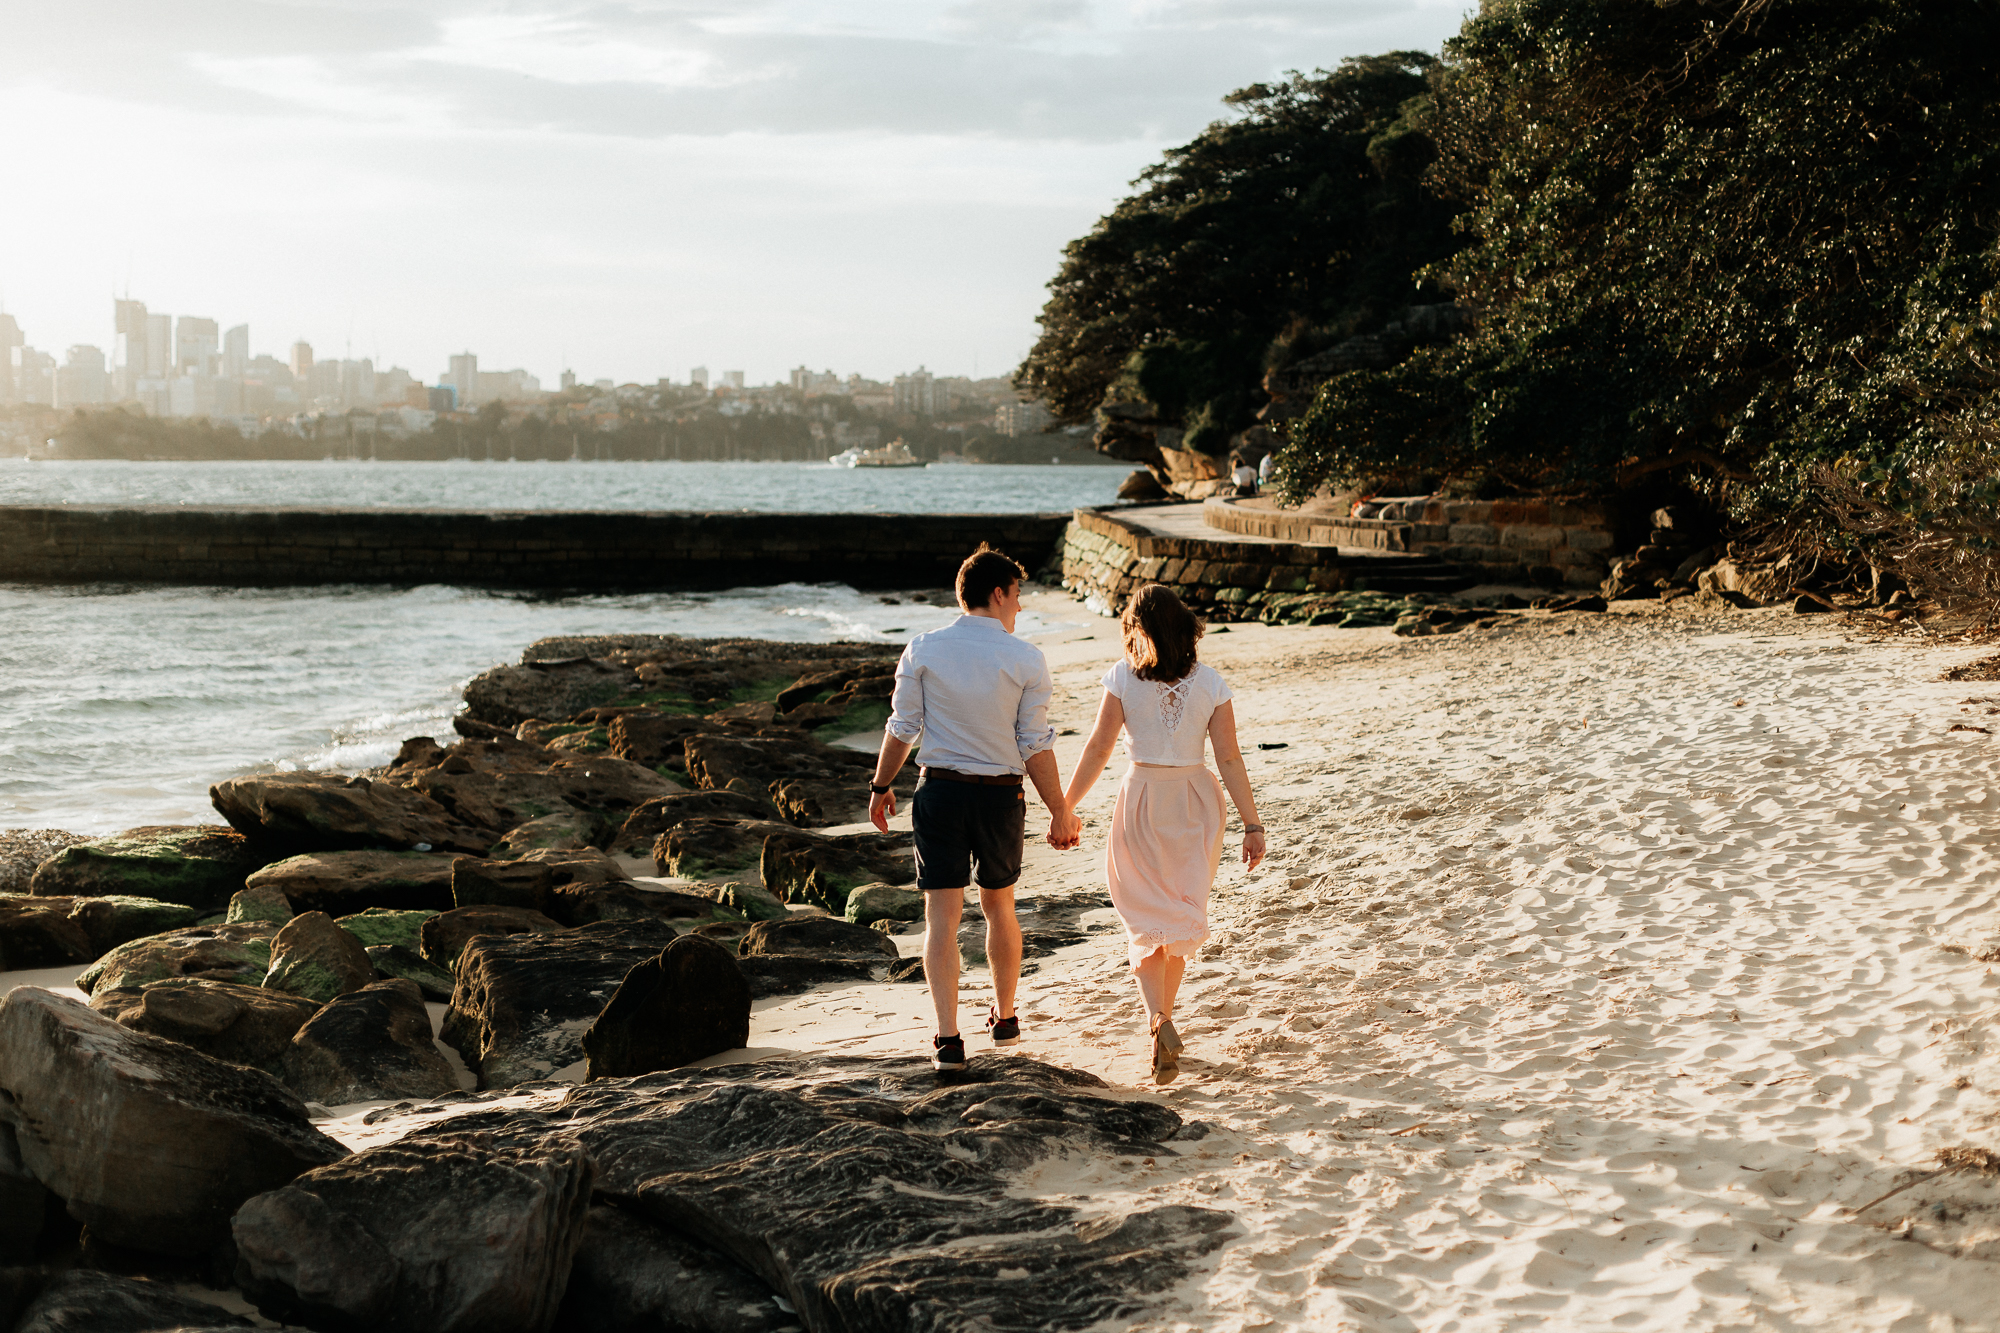 Amanzi and Steven_Engagement_Sydney_Holly Medway Photography-13.JPG